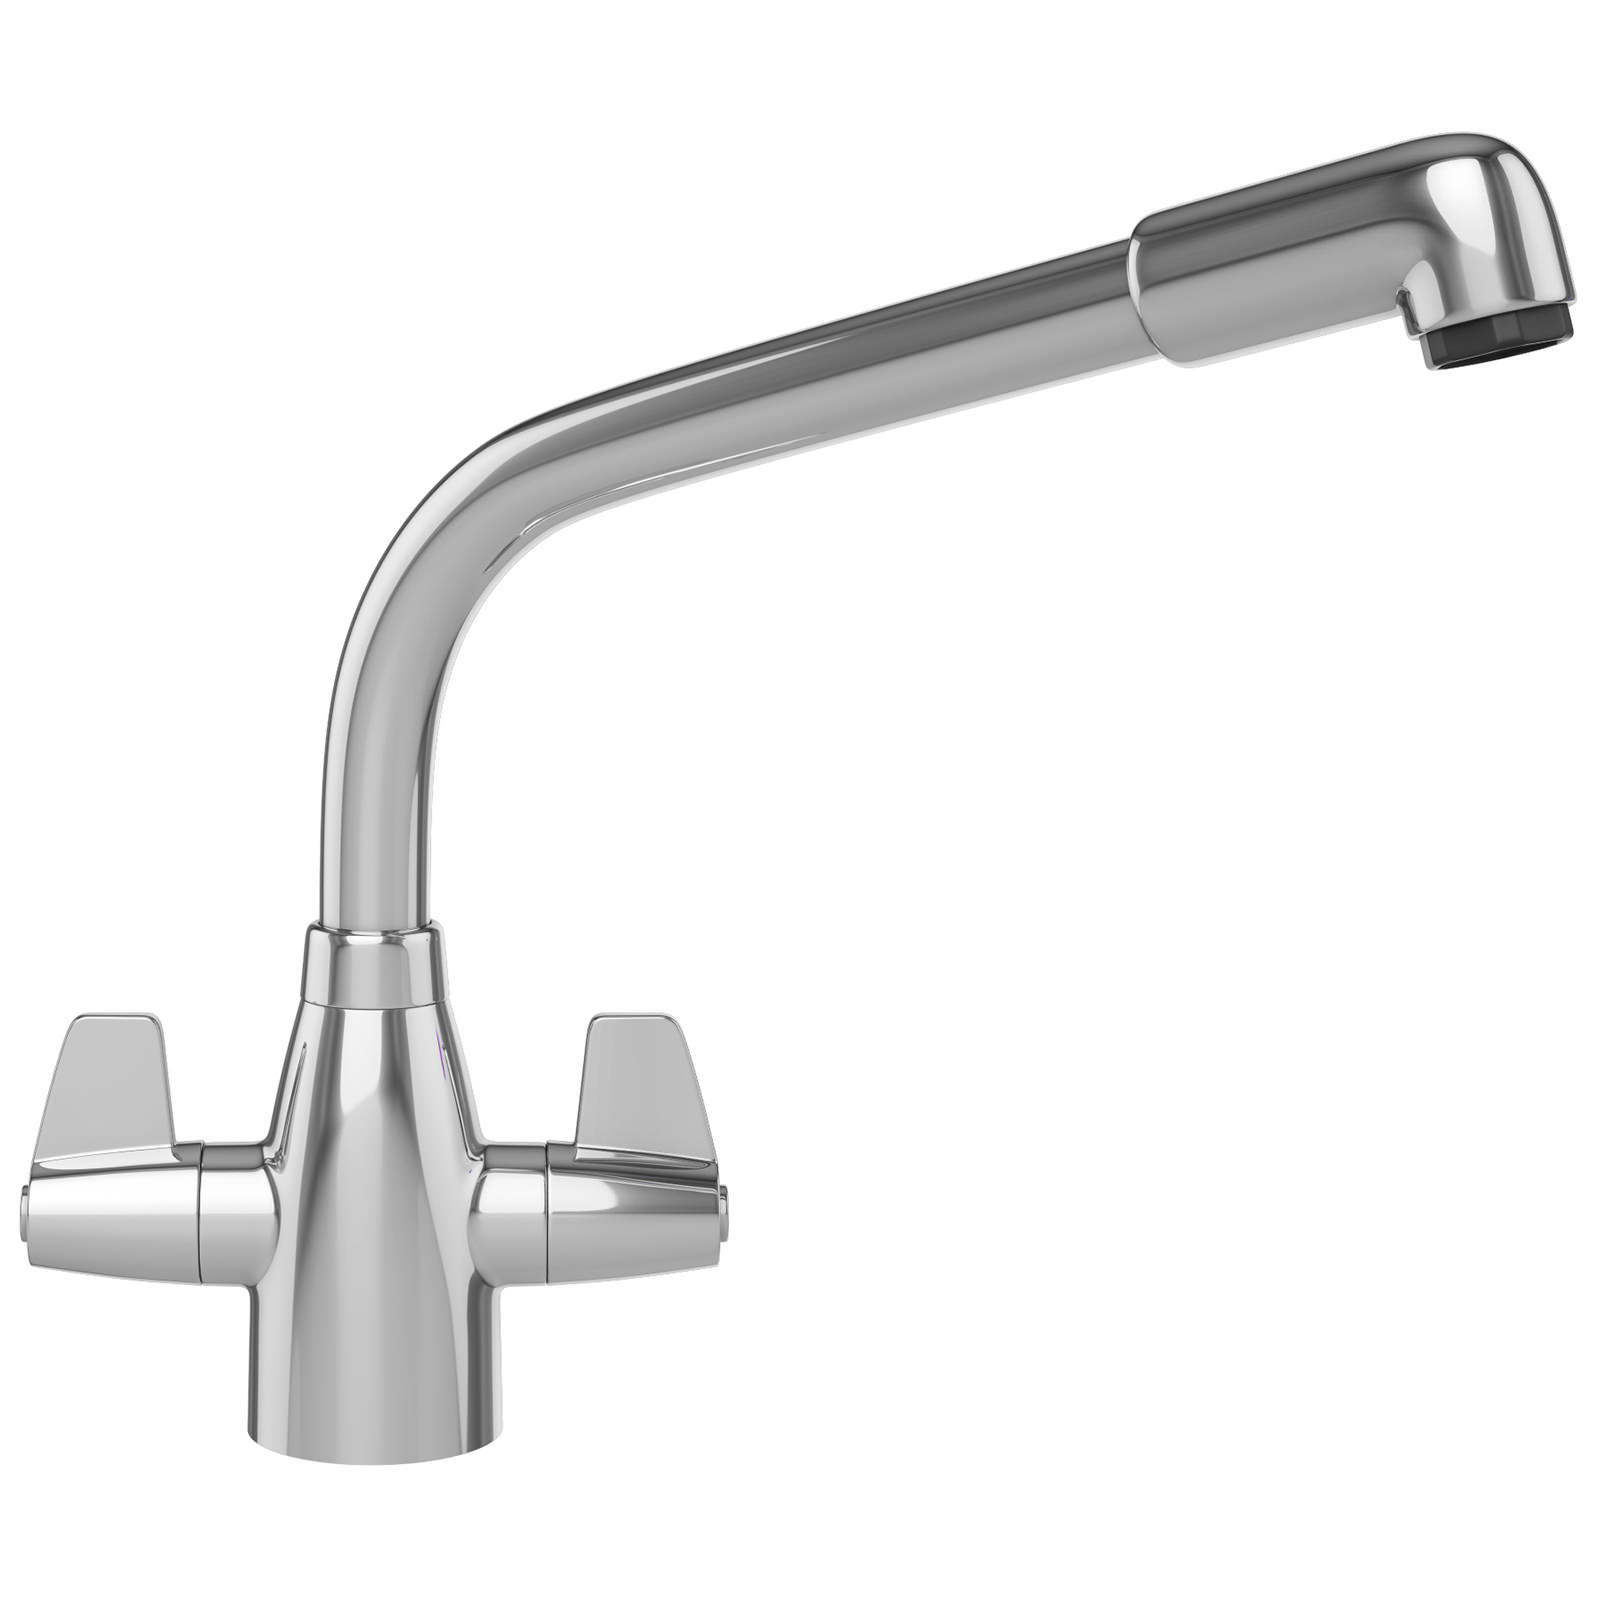 Franke Davos Chrome Kitchen Sink Mixer Tap